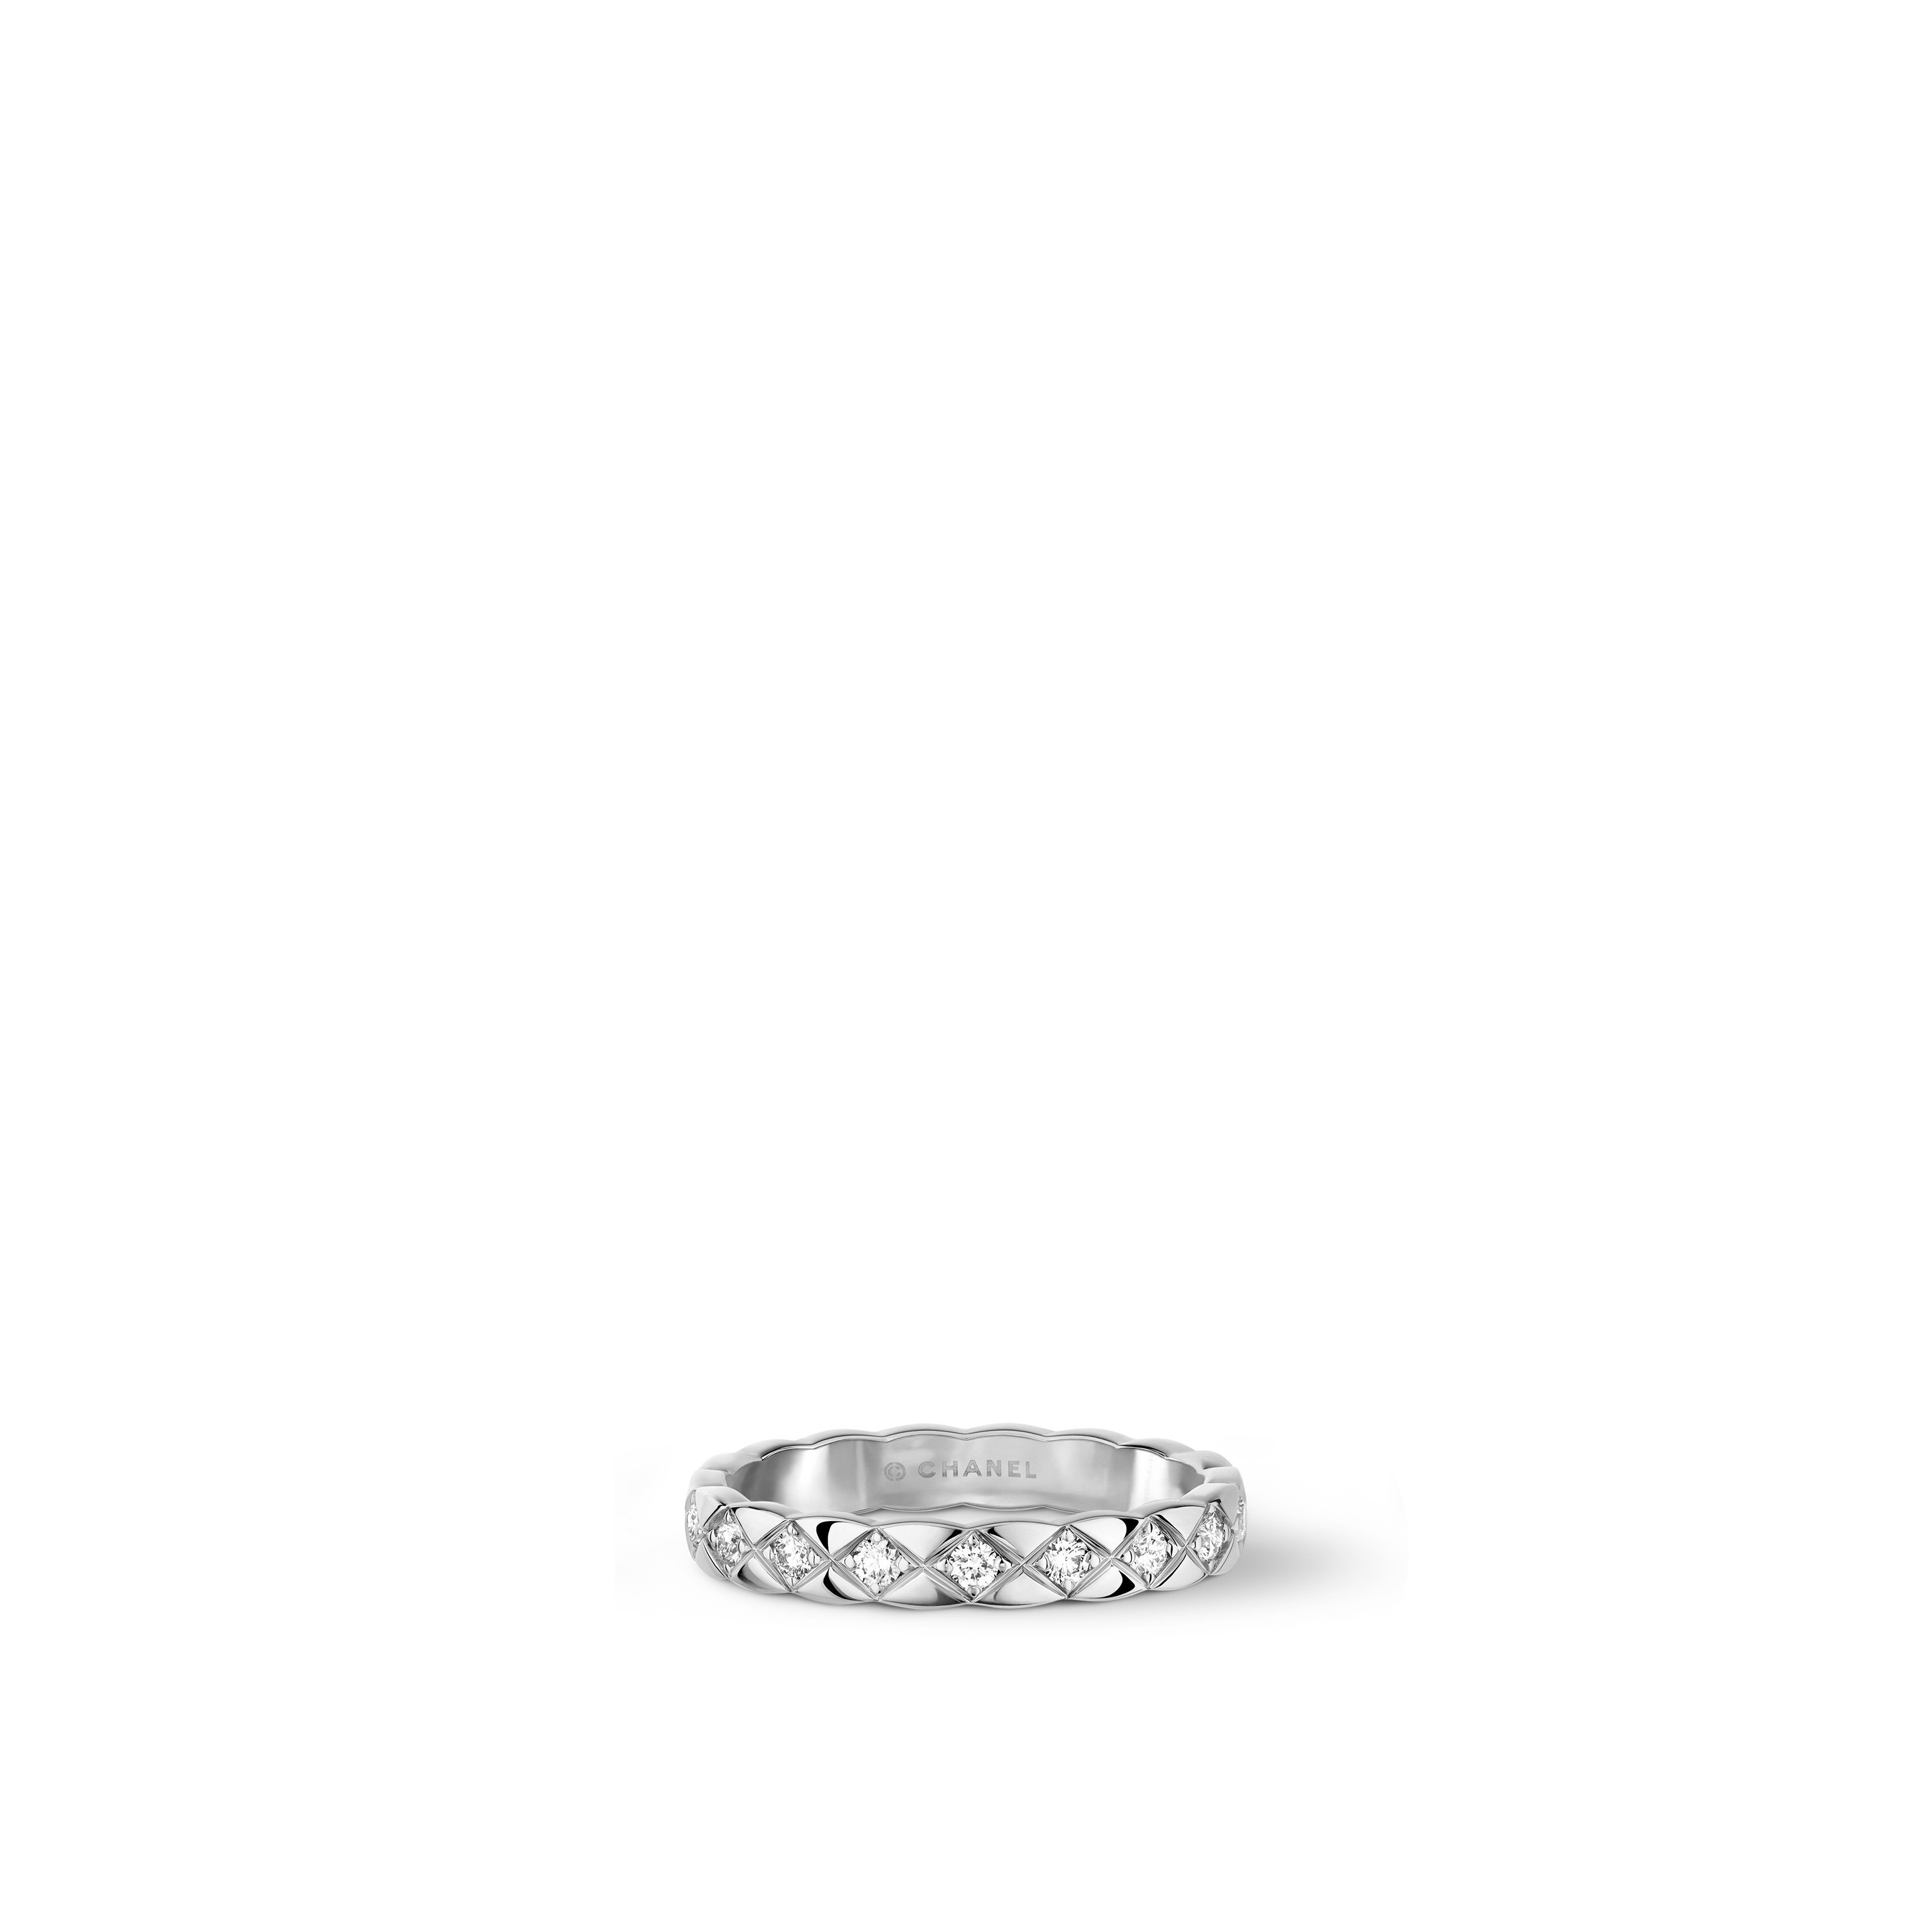 Coco Crush ring - Quilted motif, 18K white gold, diamonds. Mini version. - CHANEL - Default view - see standard sized version